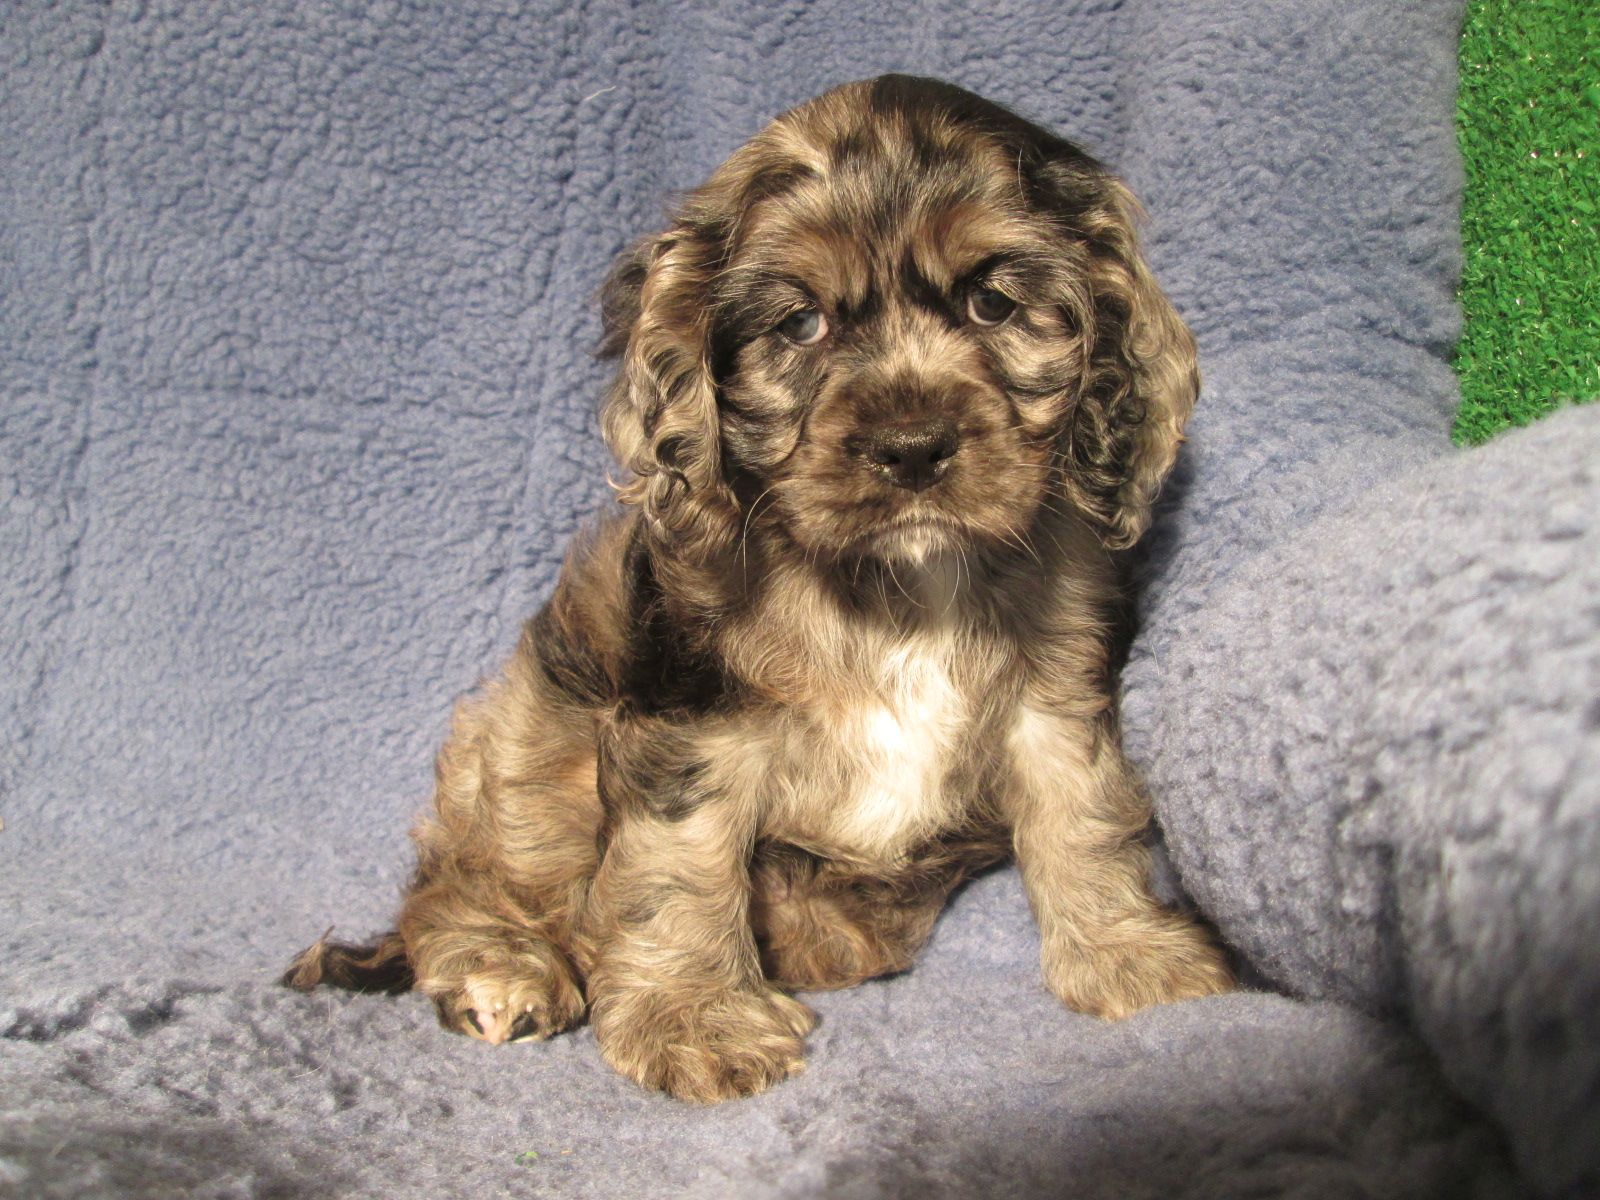 Simply Perfect Cockalier Puppies Available Cocker Spaniel X Cavalier 8 12 Weeks Of Age Permanent Shots A Mixed Breed Puppies Puppies Puppies For Sale